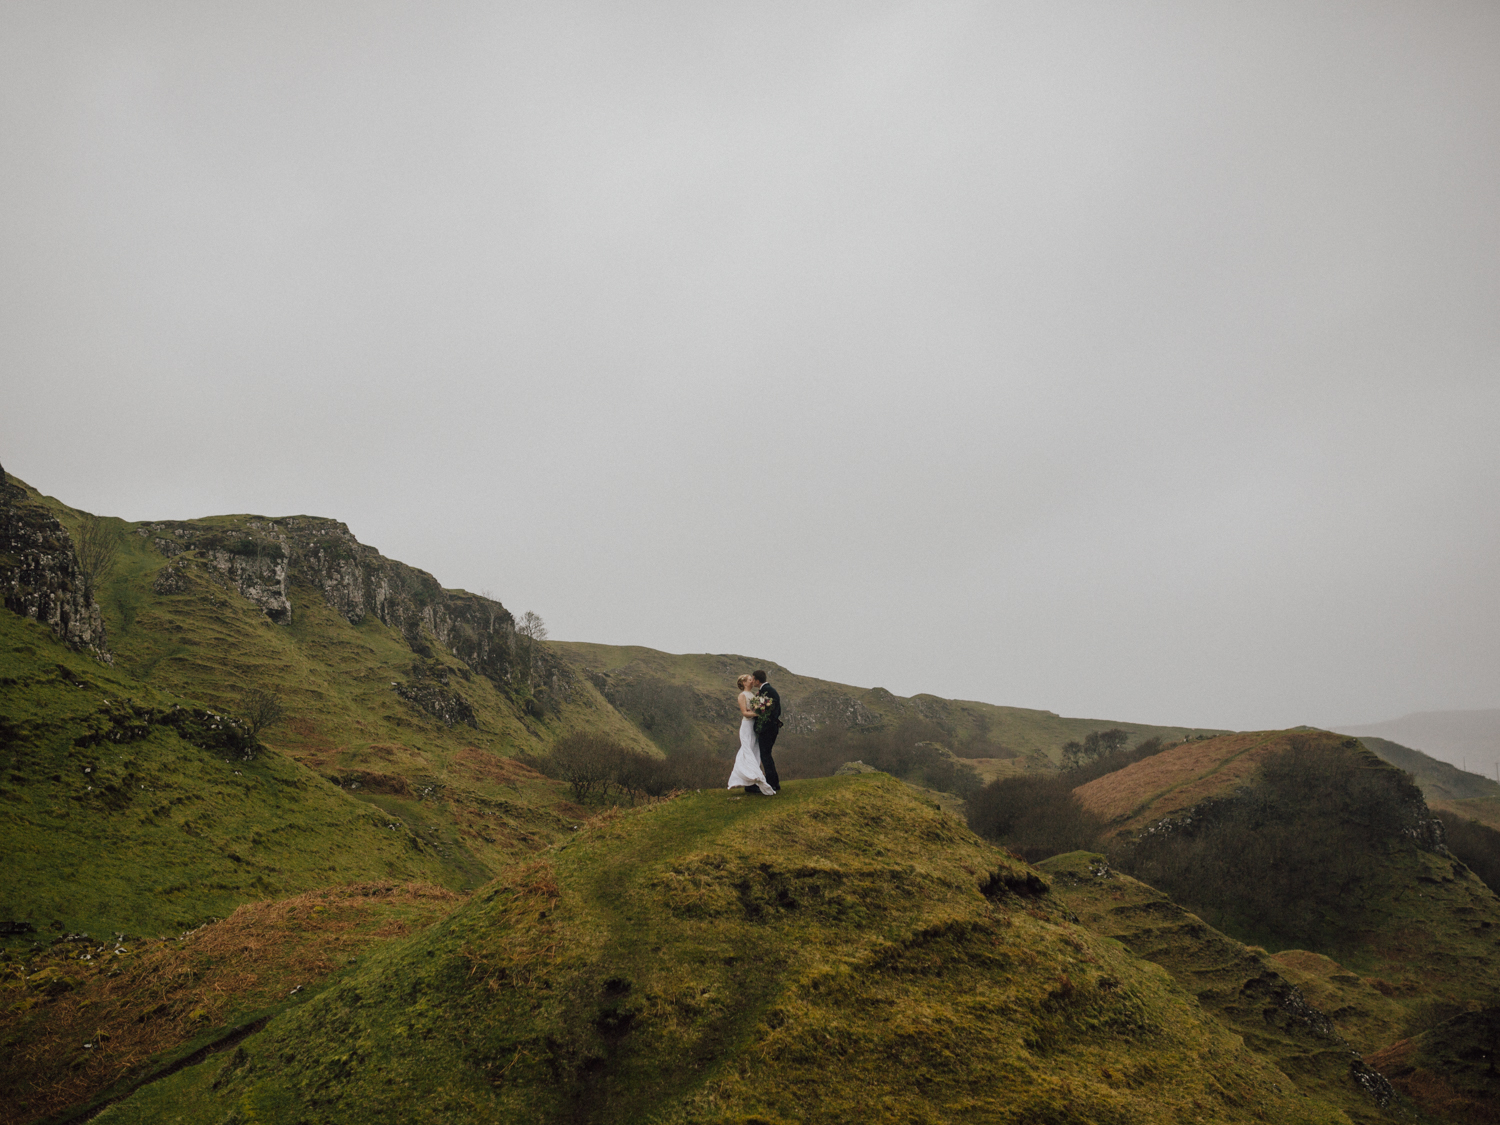 capyture-wedding-photographer-destination-elopement-isle-skye-scotland-318